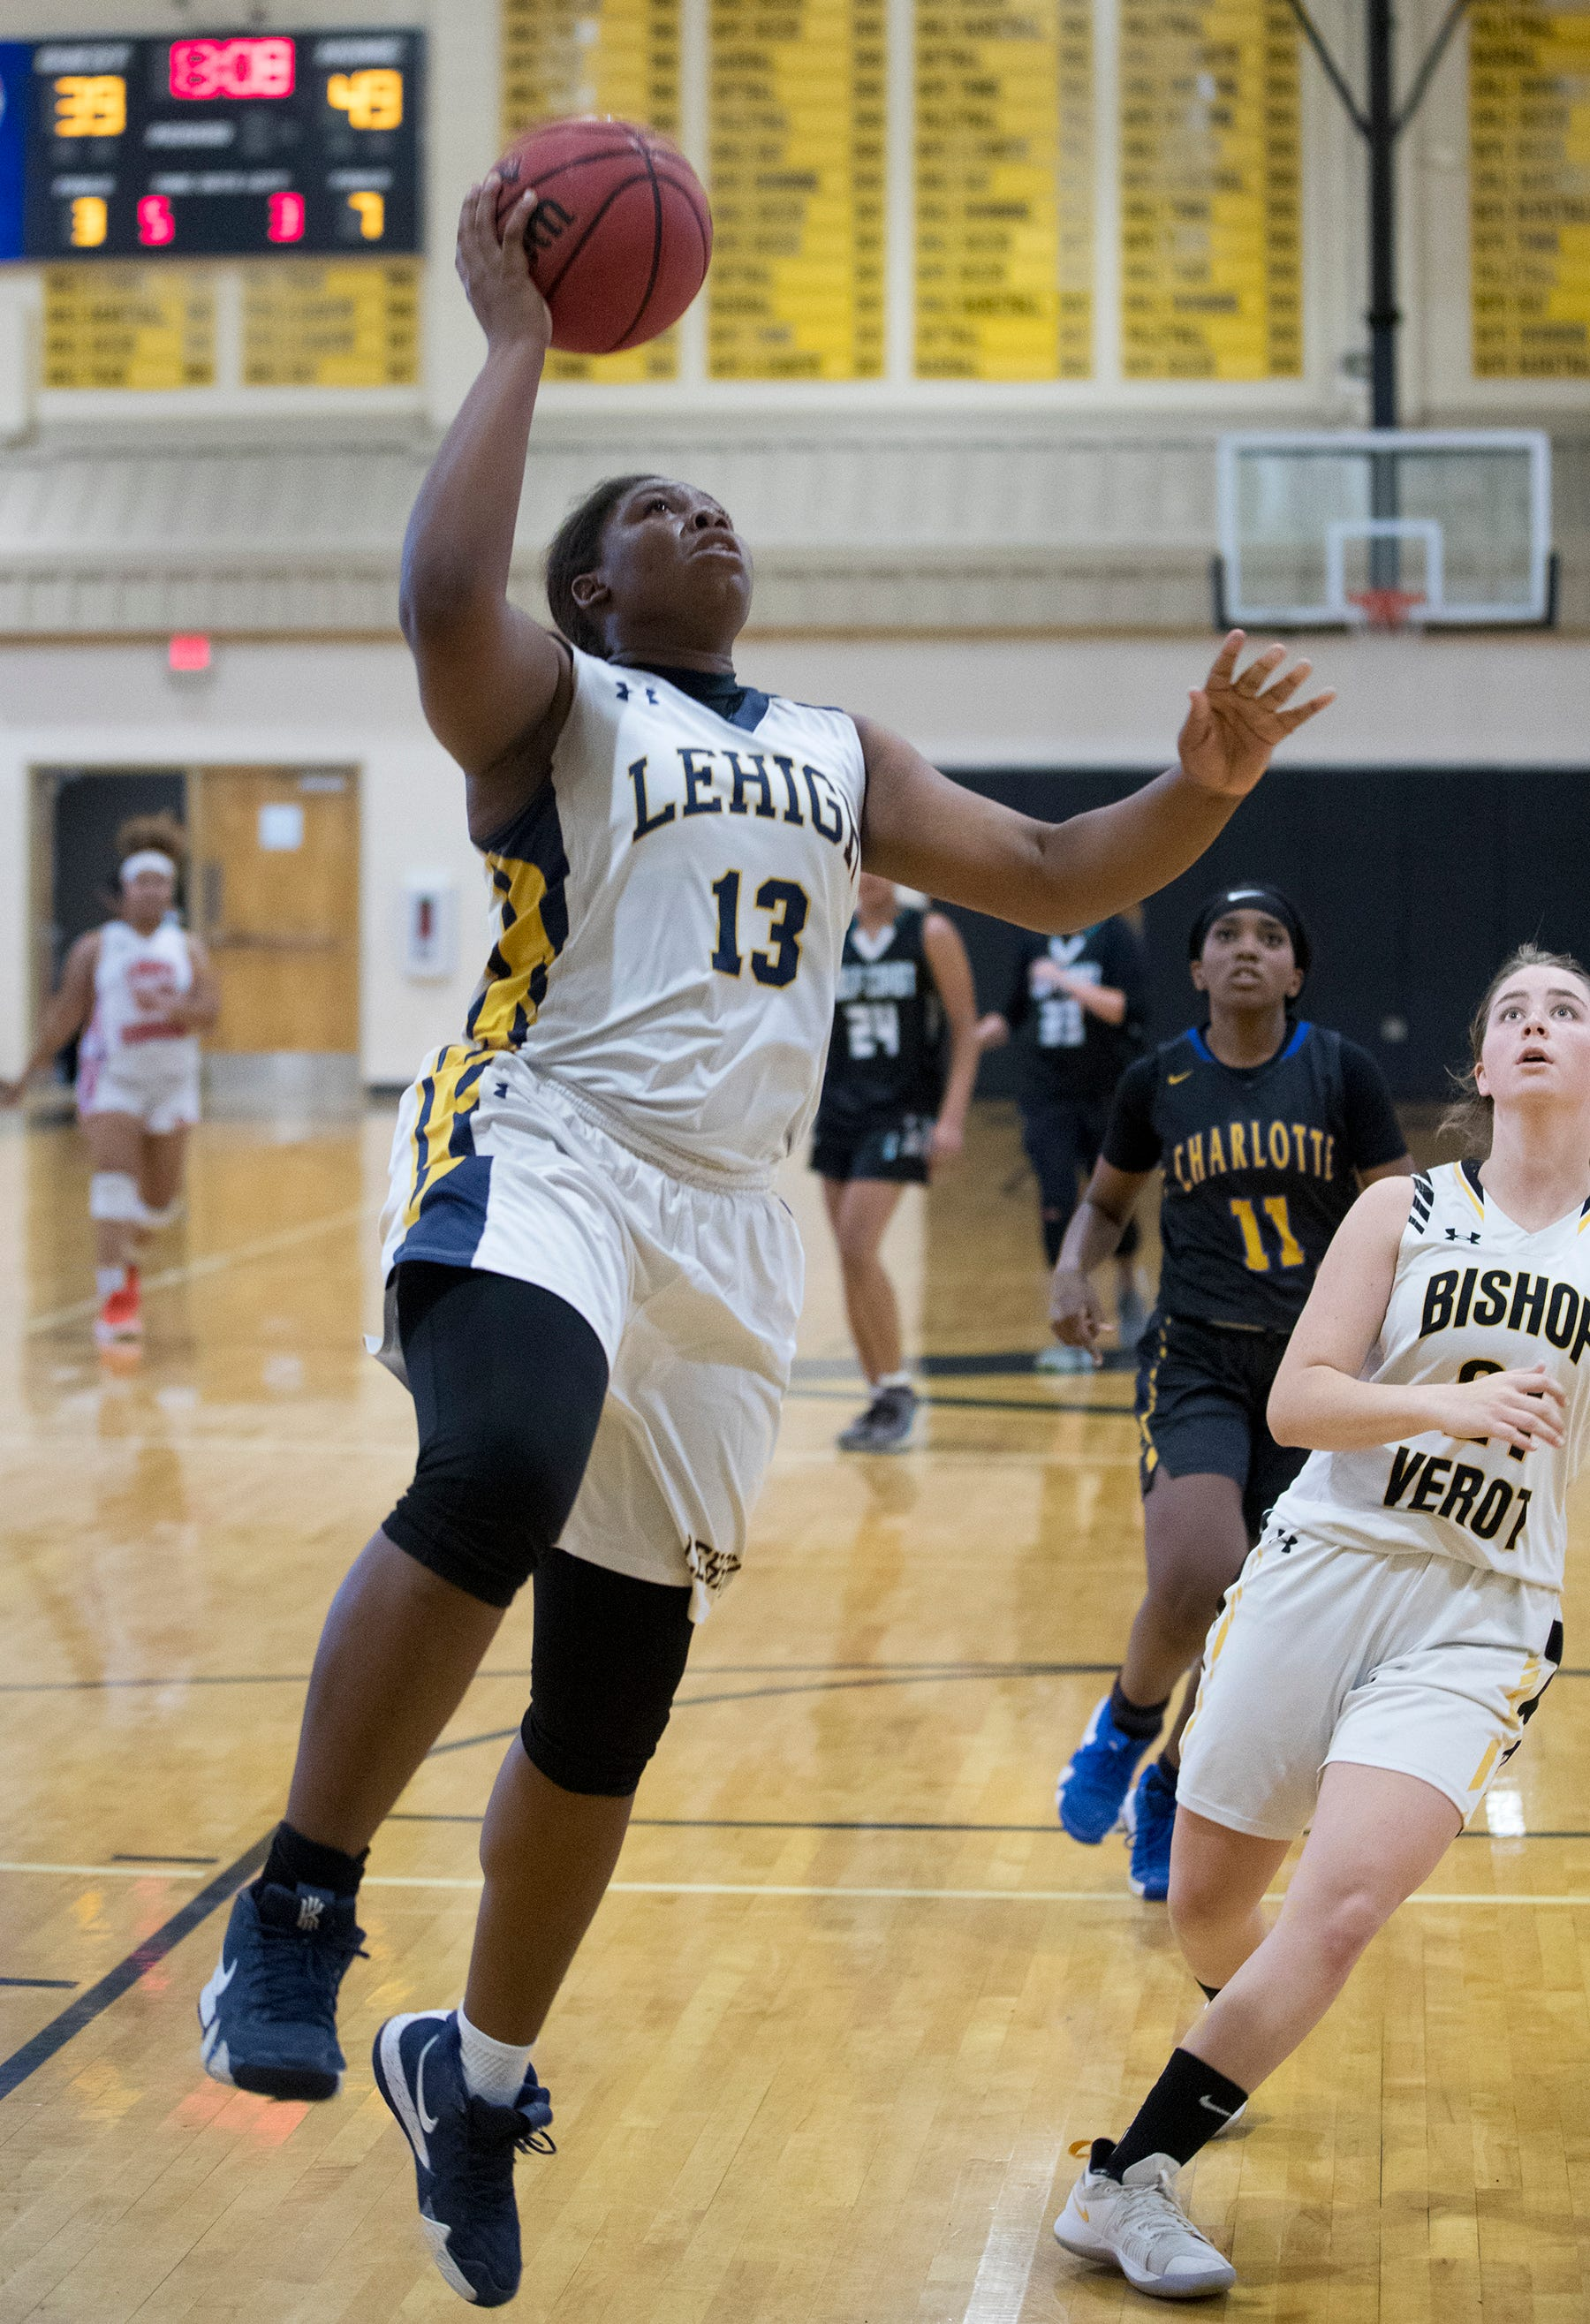 Lehigh High School's Aliesha Curry scores on Sunday during the SFABC Girls All-Star Basketball Game at Bishop Verot in Fort Myers.